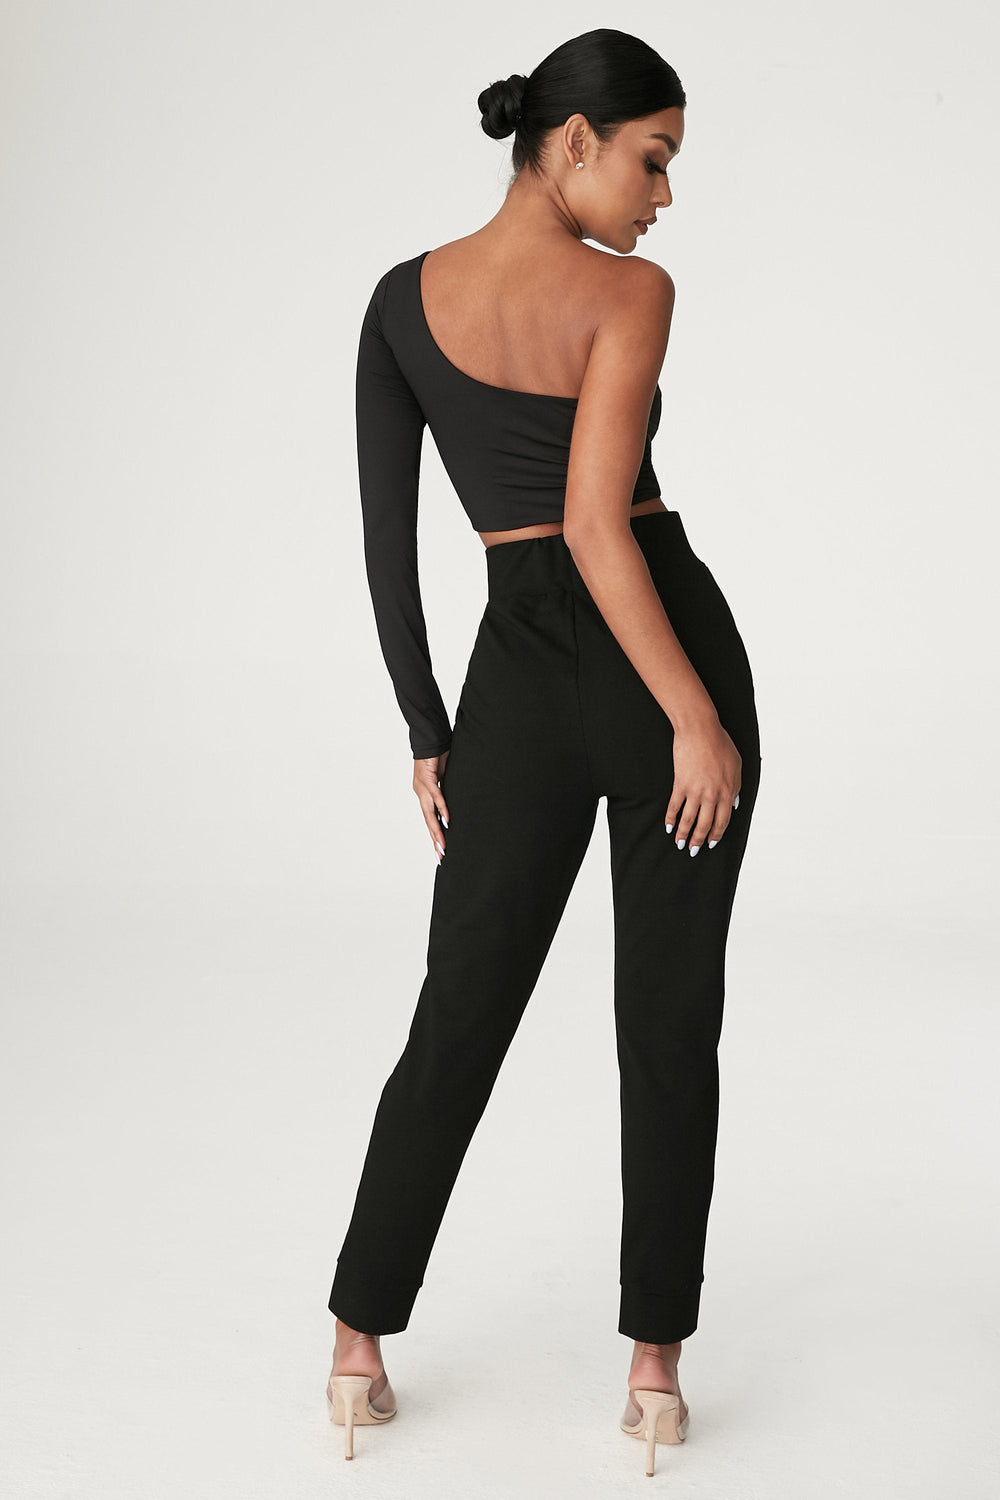 Amelia Fitted High Waisted Joggers - Black - MESHKI ?id=12376202608715